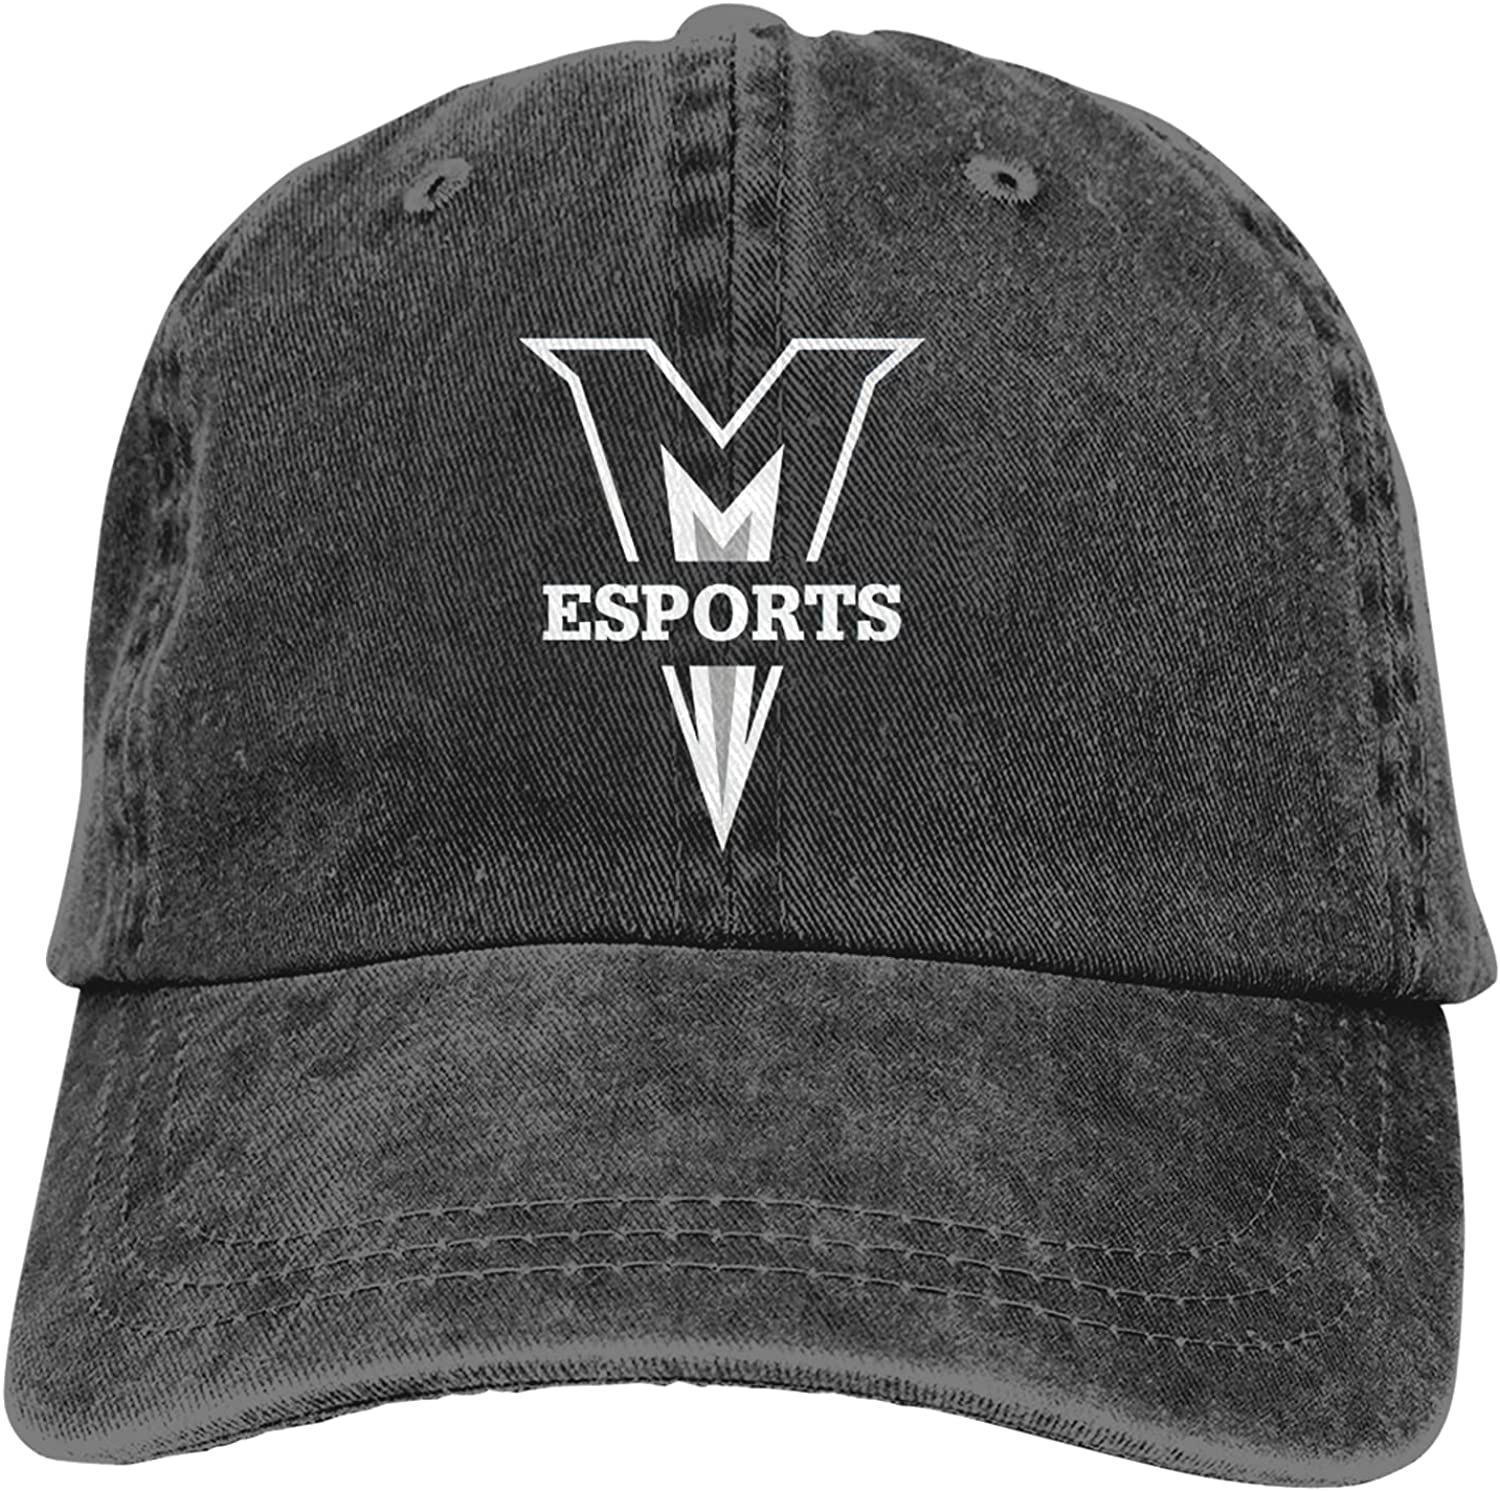 Yund Menlo College1 Cap Max 84% OFF Suitable College New product!! Adjustabl Students. for